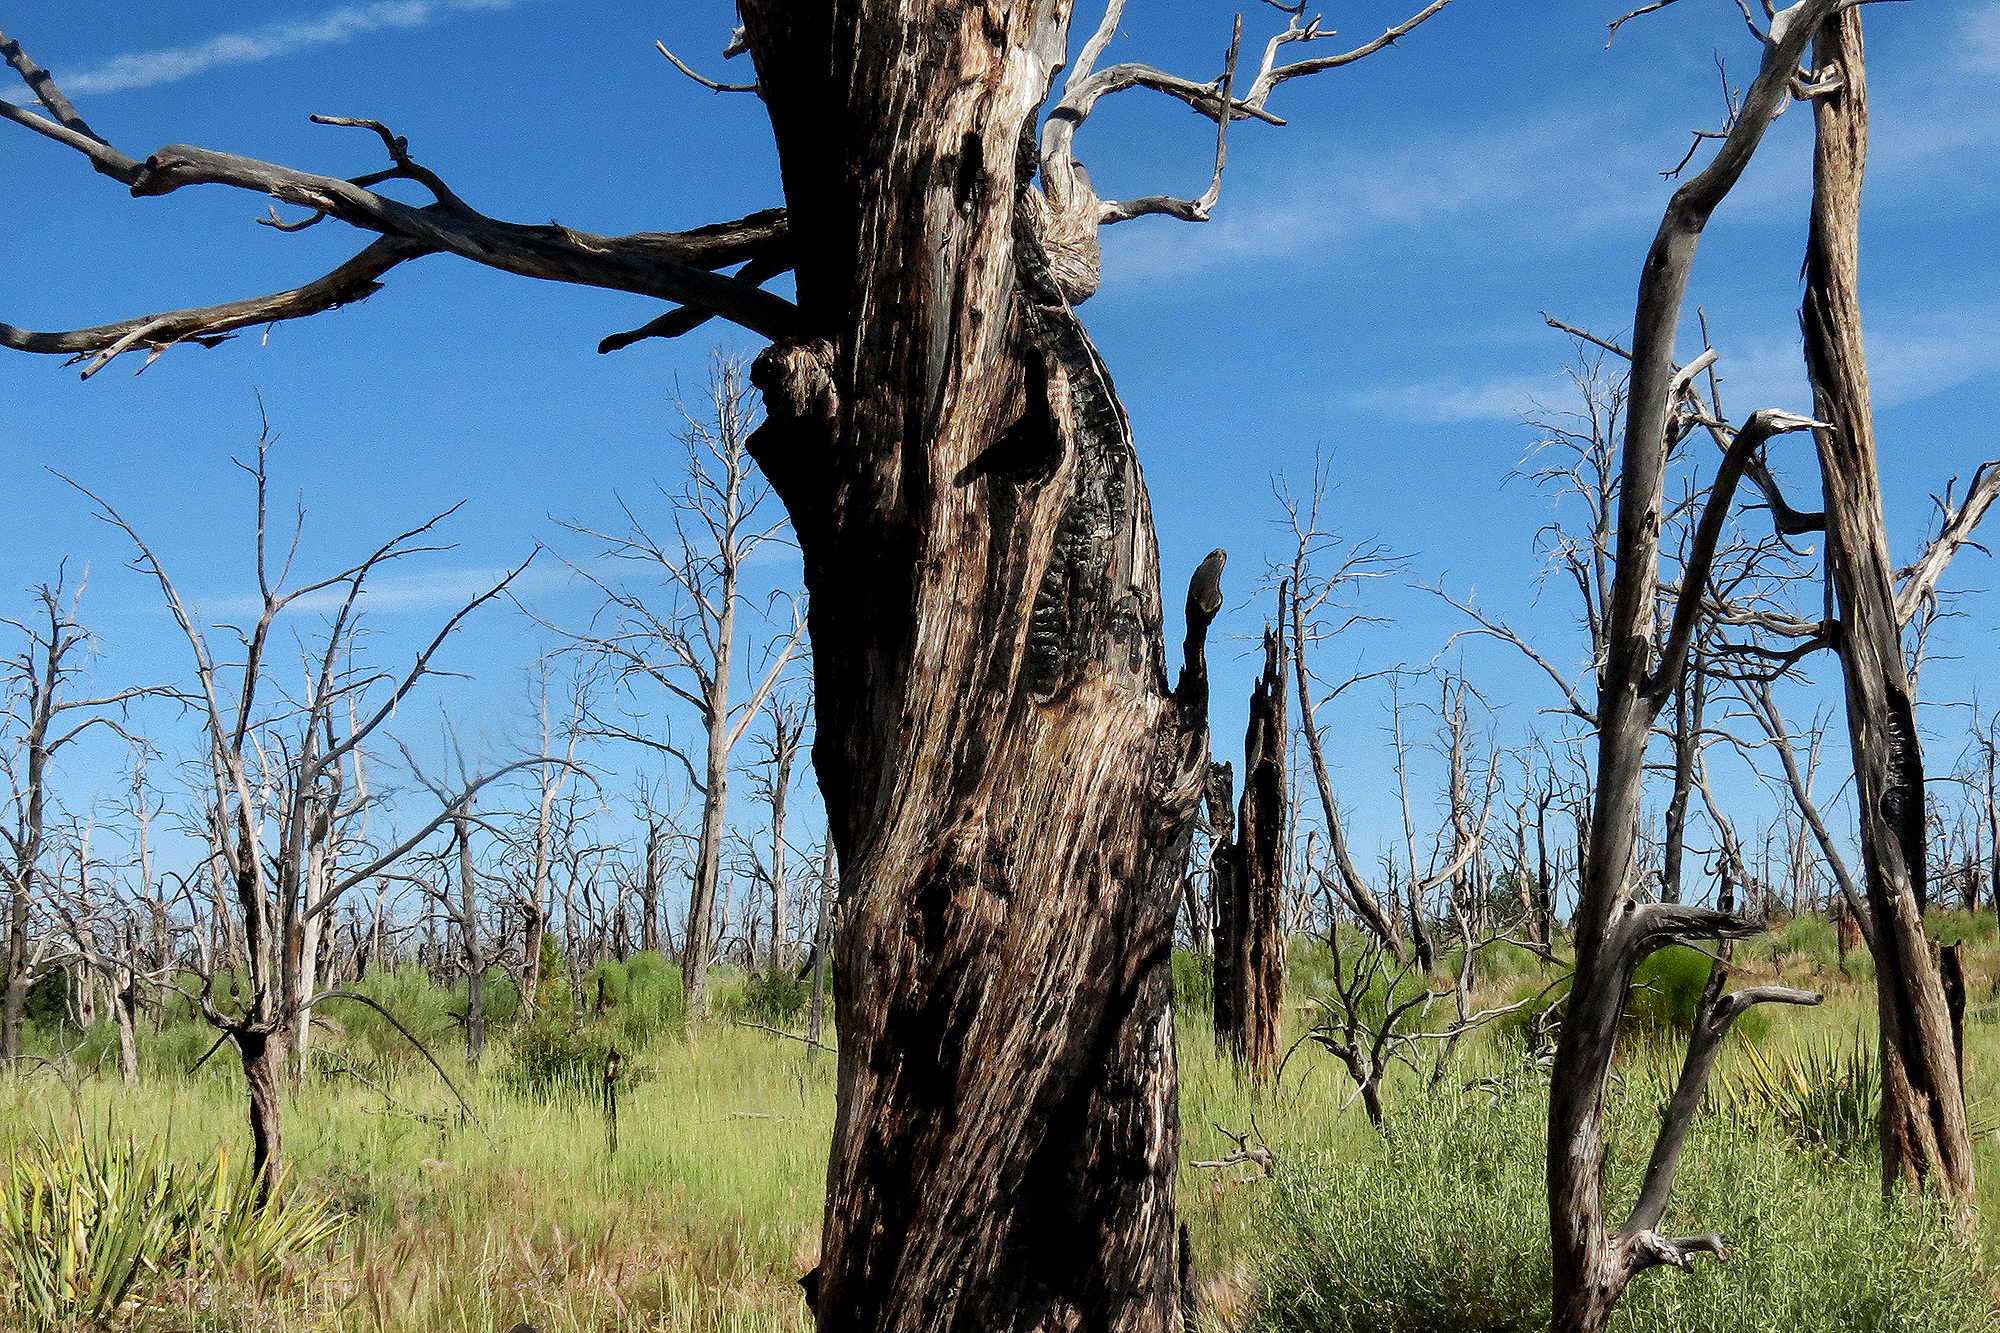 Photo: Fire-damaged trees at Mesa Verde National Park